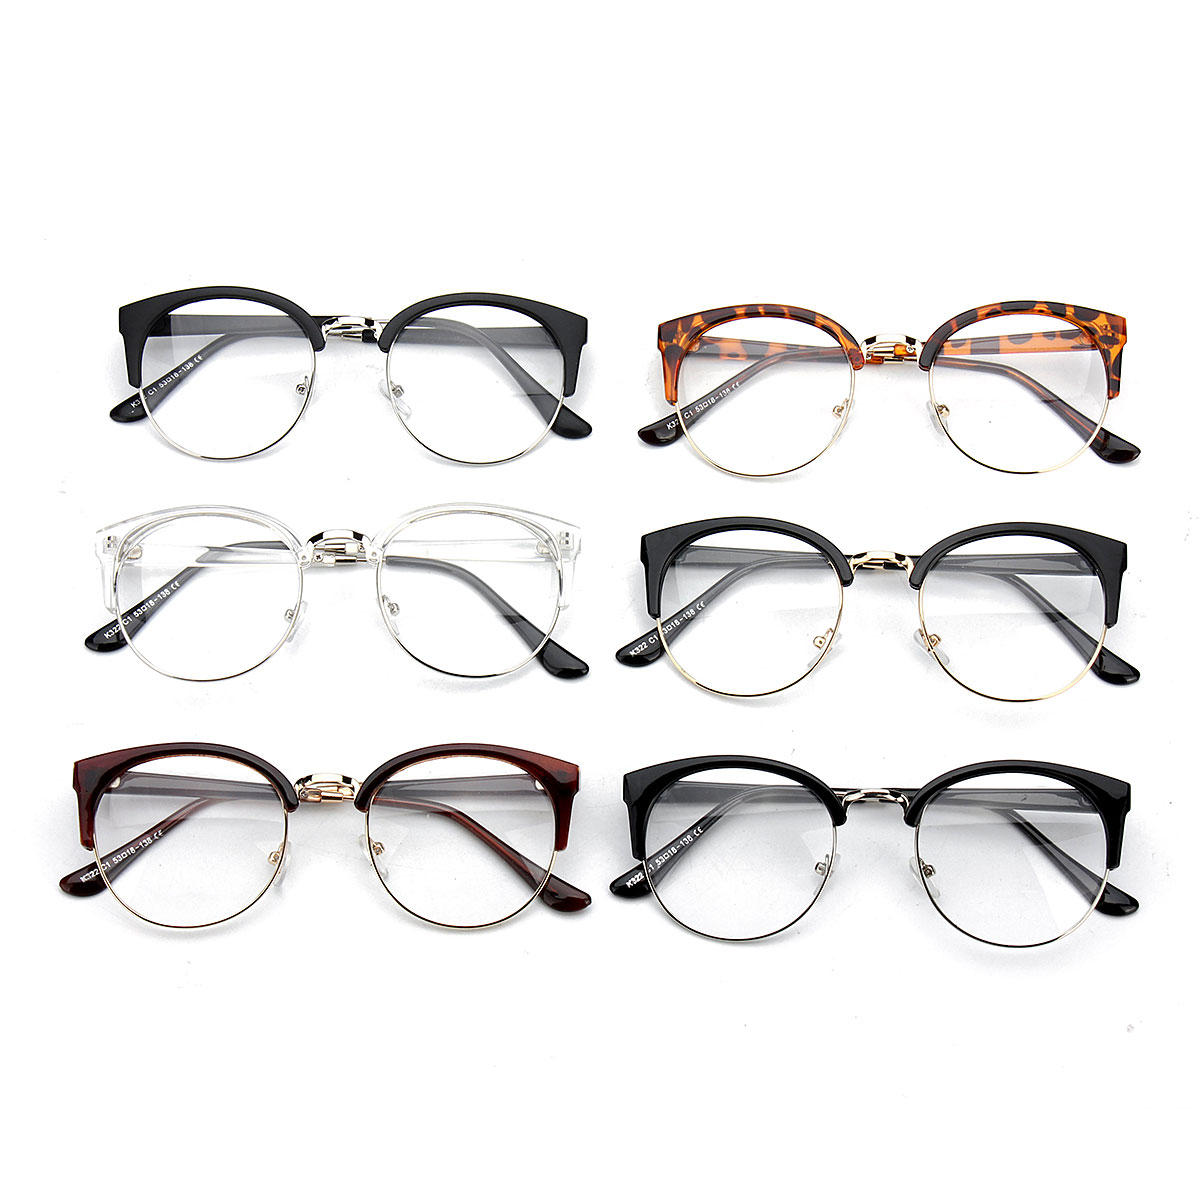 978d1baff9 Women Vintage Nerd Glasses Clear Lens Eyewear Men Retro Round Metal Frame  Glasses COD